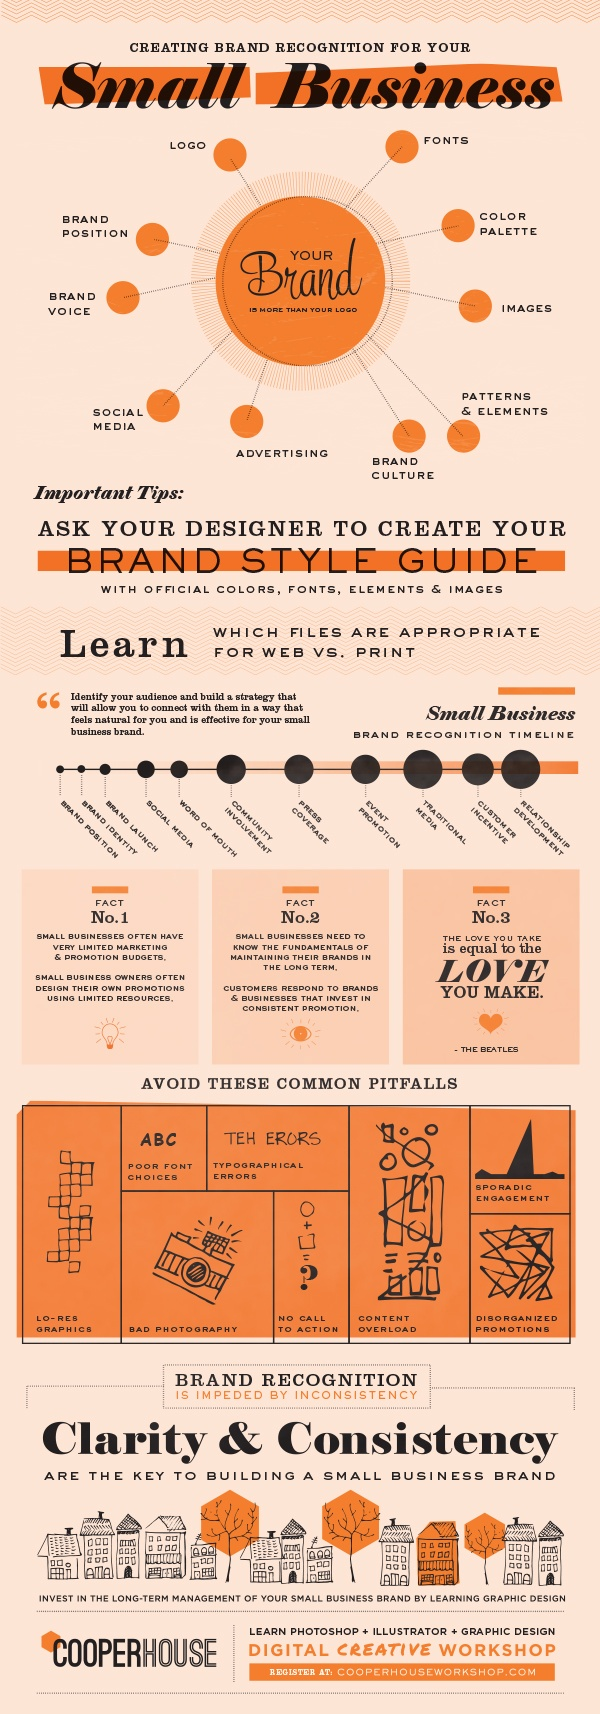 Create-Brand-Recognition